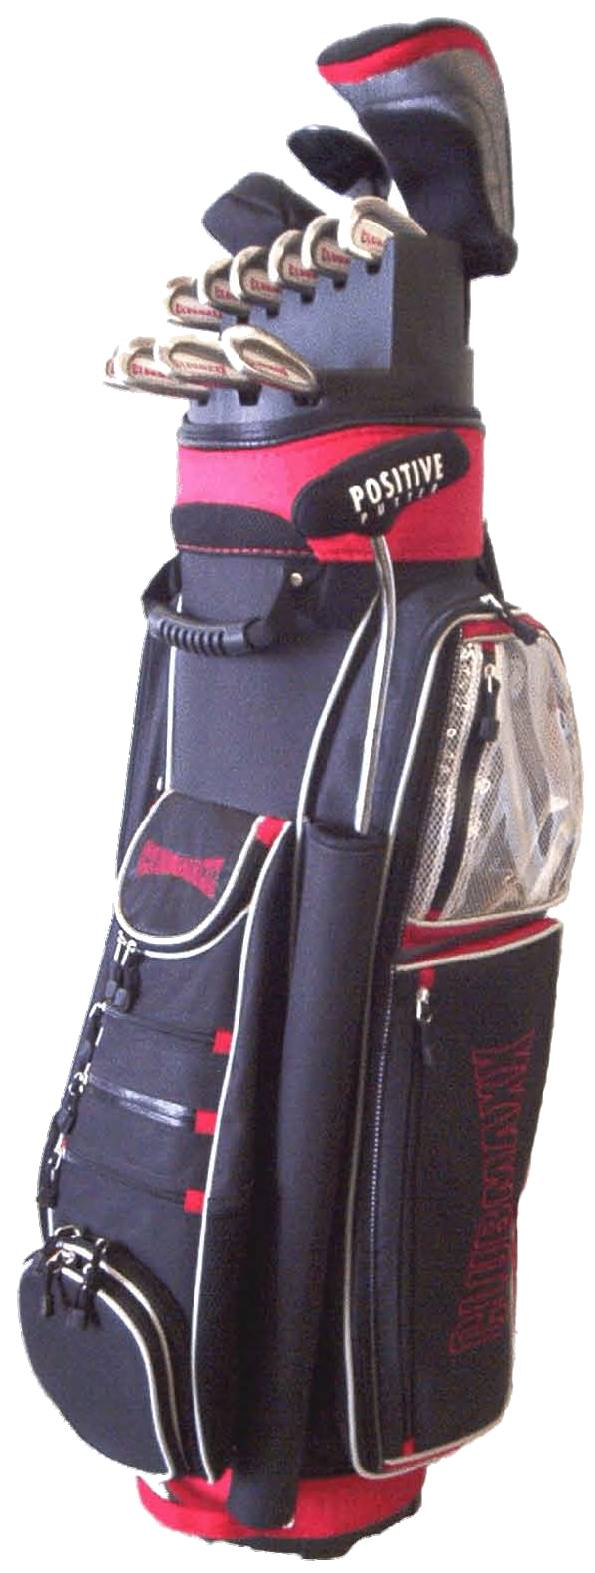 Clubmaxx Golf Bag Style Guru Fashion Glitz Glamour